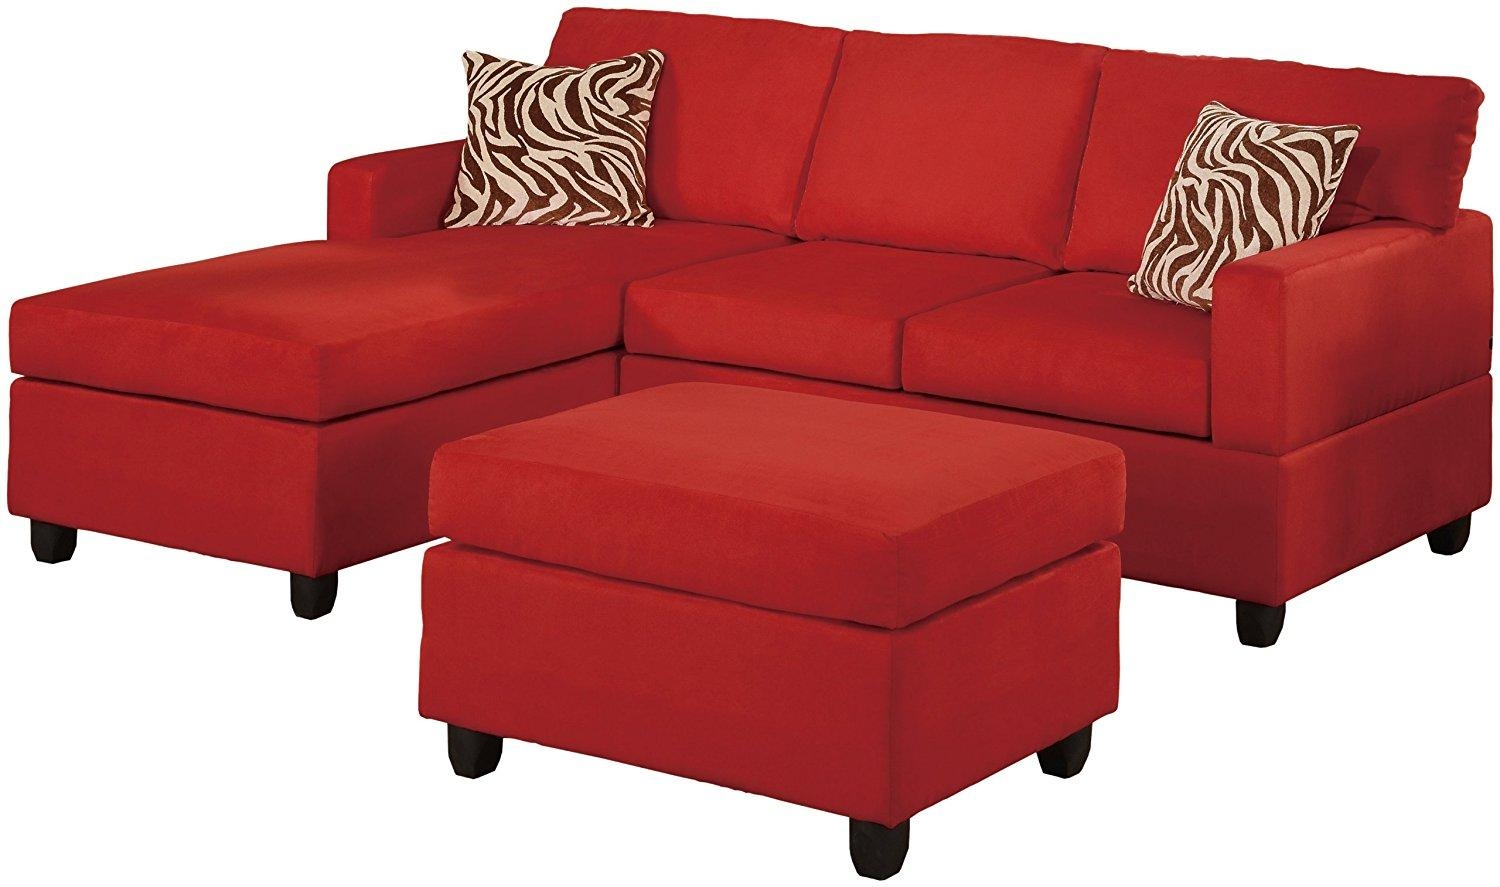 Cheap Red Sofas 29 With Cheap Red Sofas | Jinanhongyu For Cheap Red Sofas (Image 2 of 20)